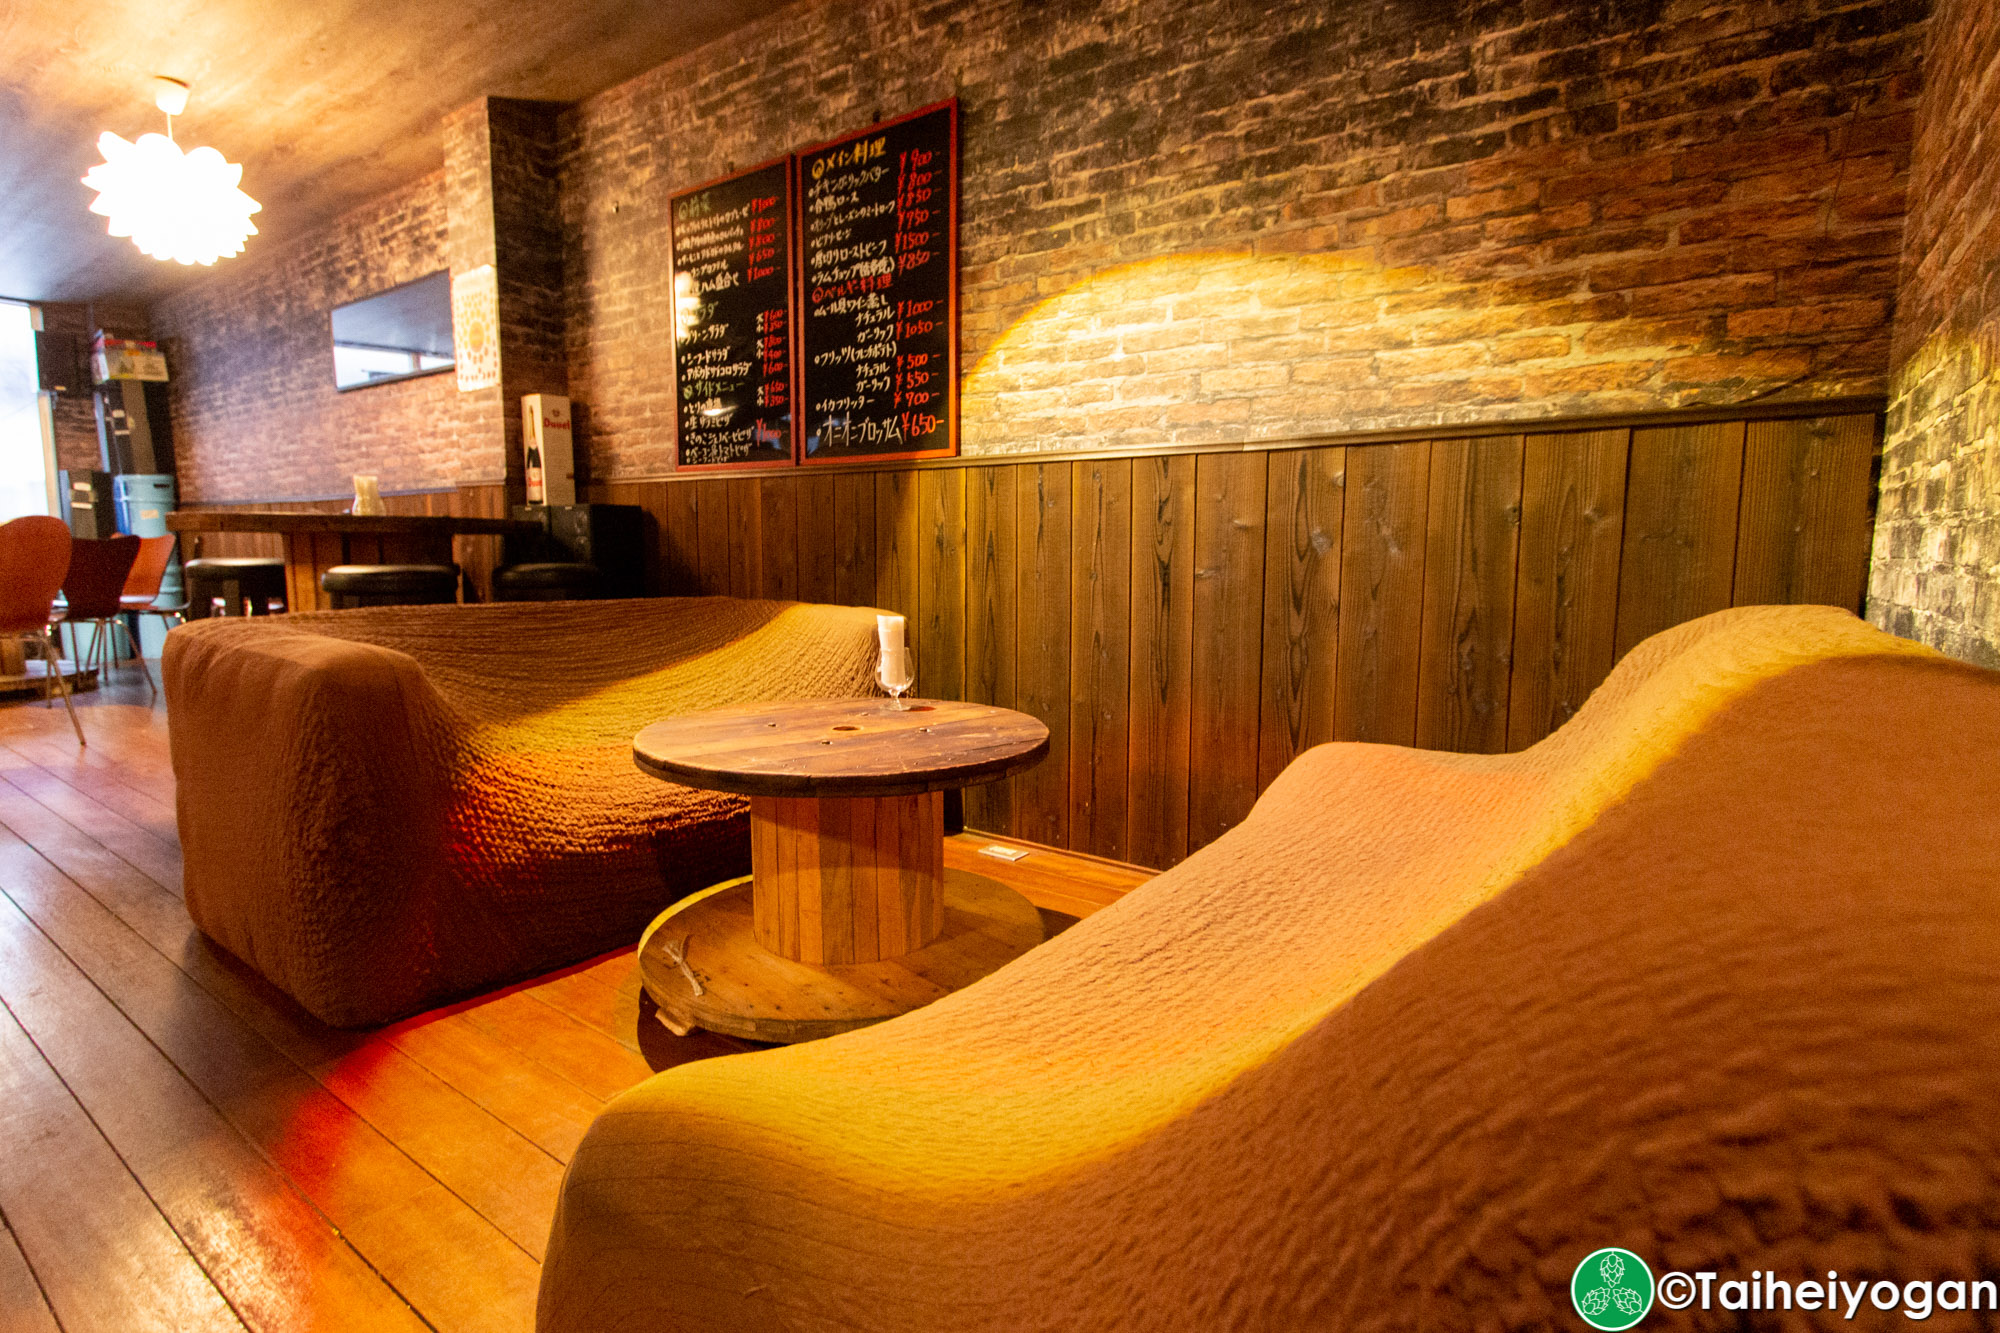 Maison de Biere - Interior - Couch Seating